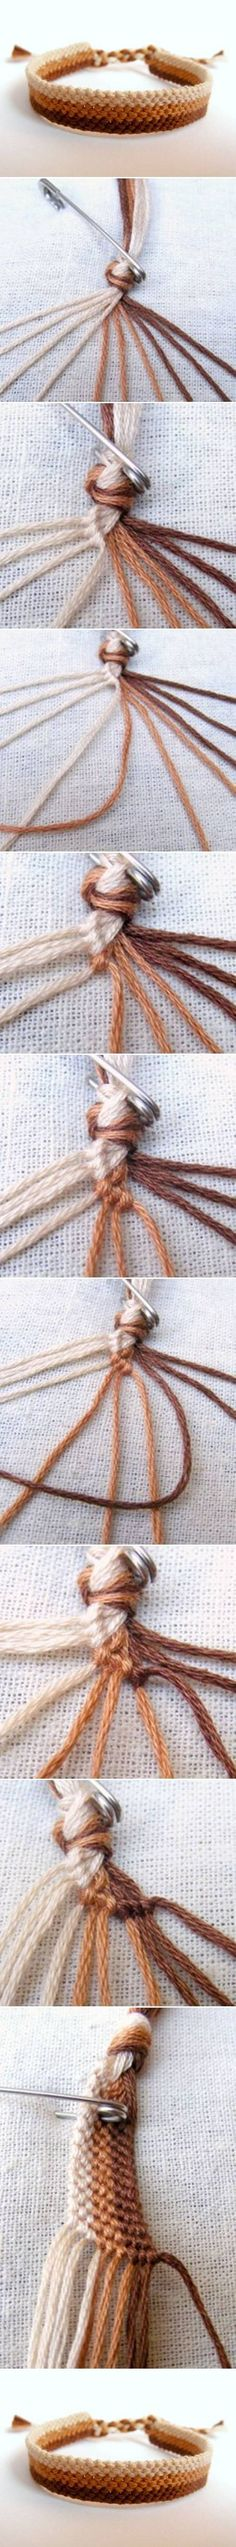 DIY Easy Weave Bracelet DIY Projects / UsefulDIY.com